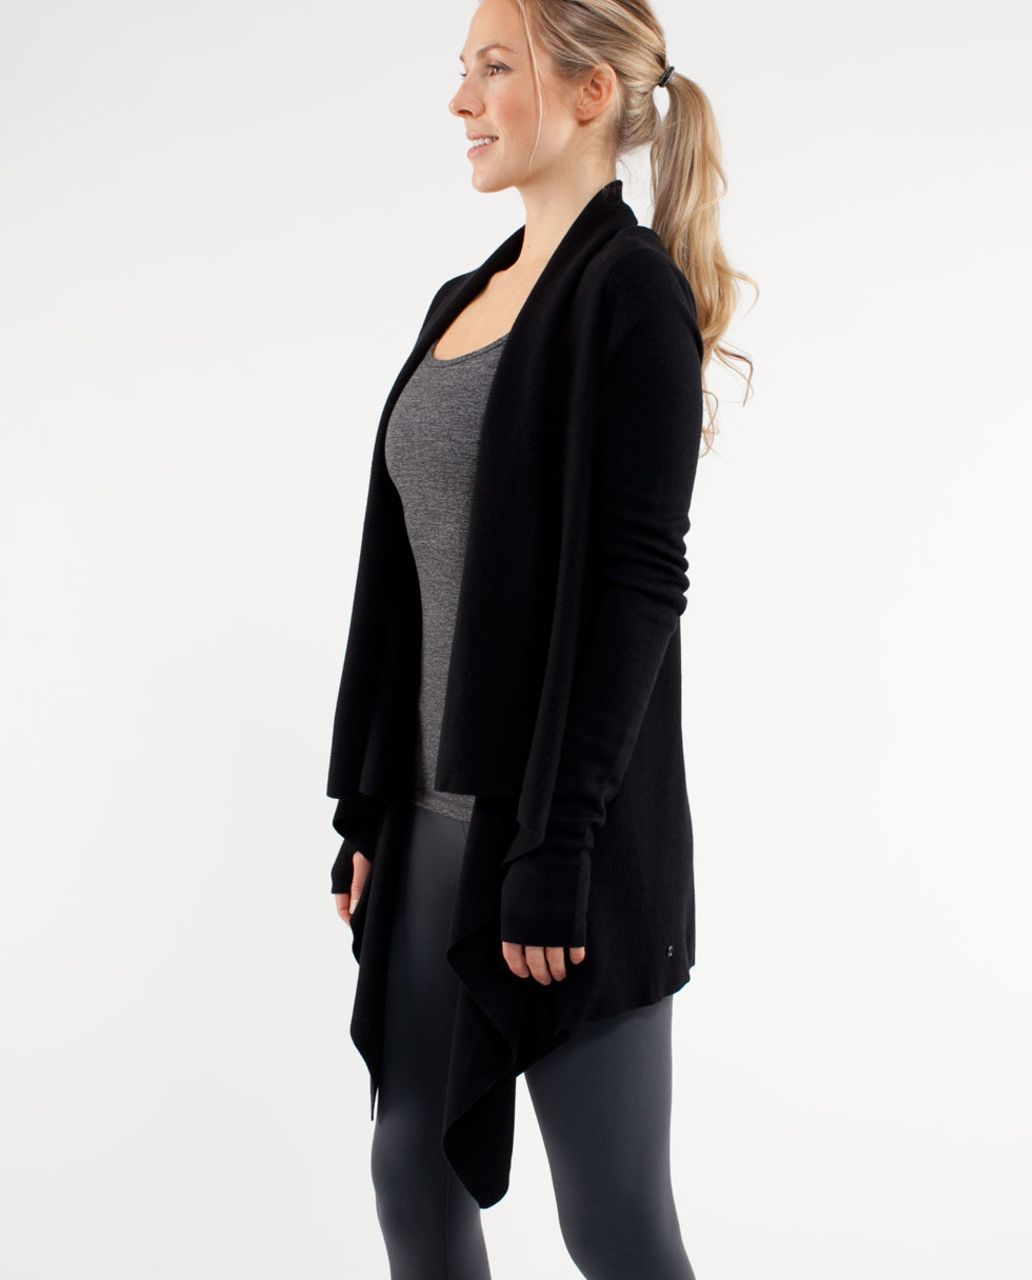 Lululemon Reflection Wrap - Black